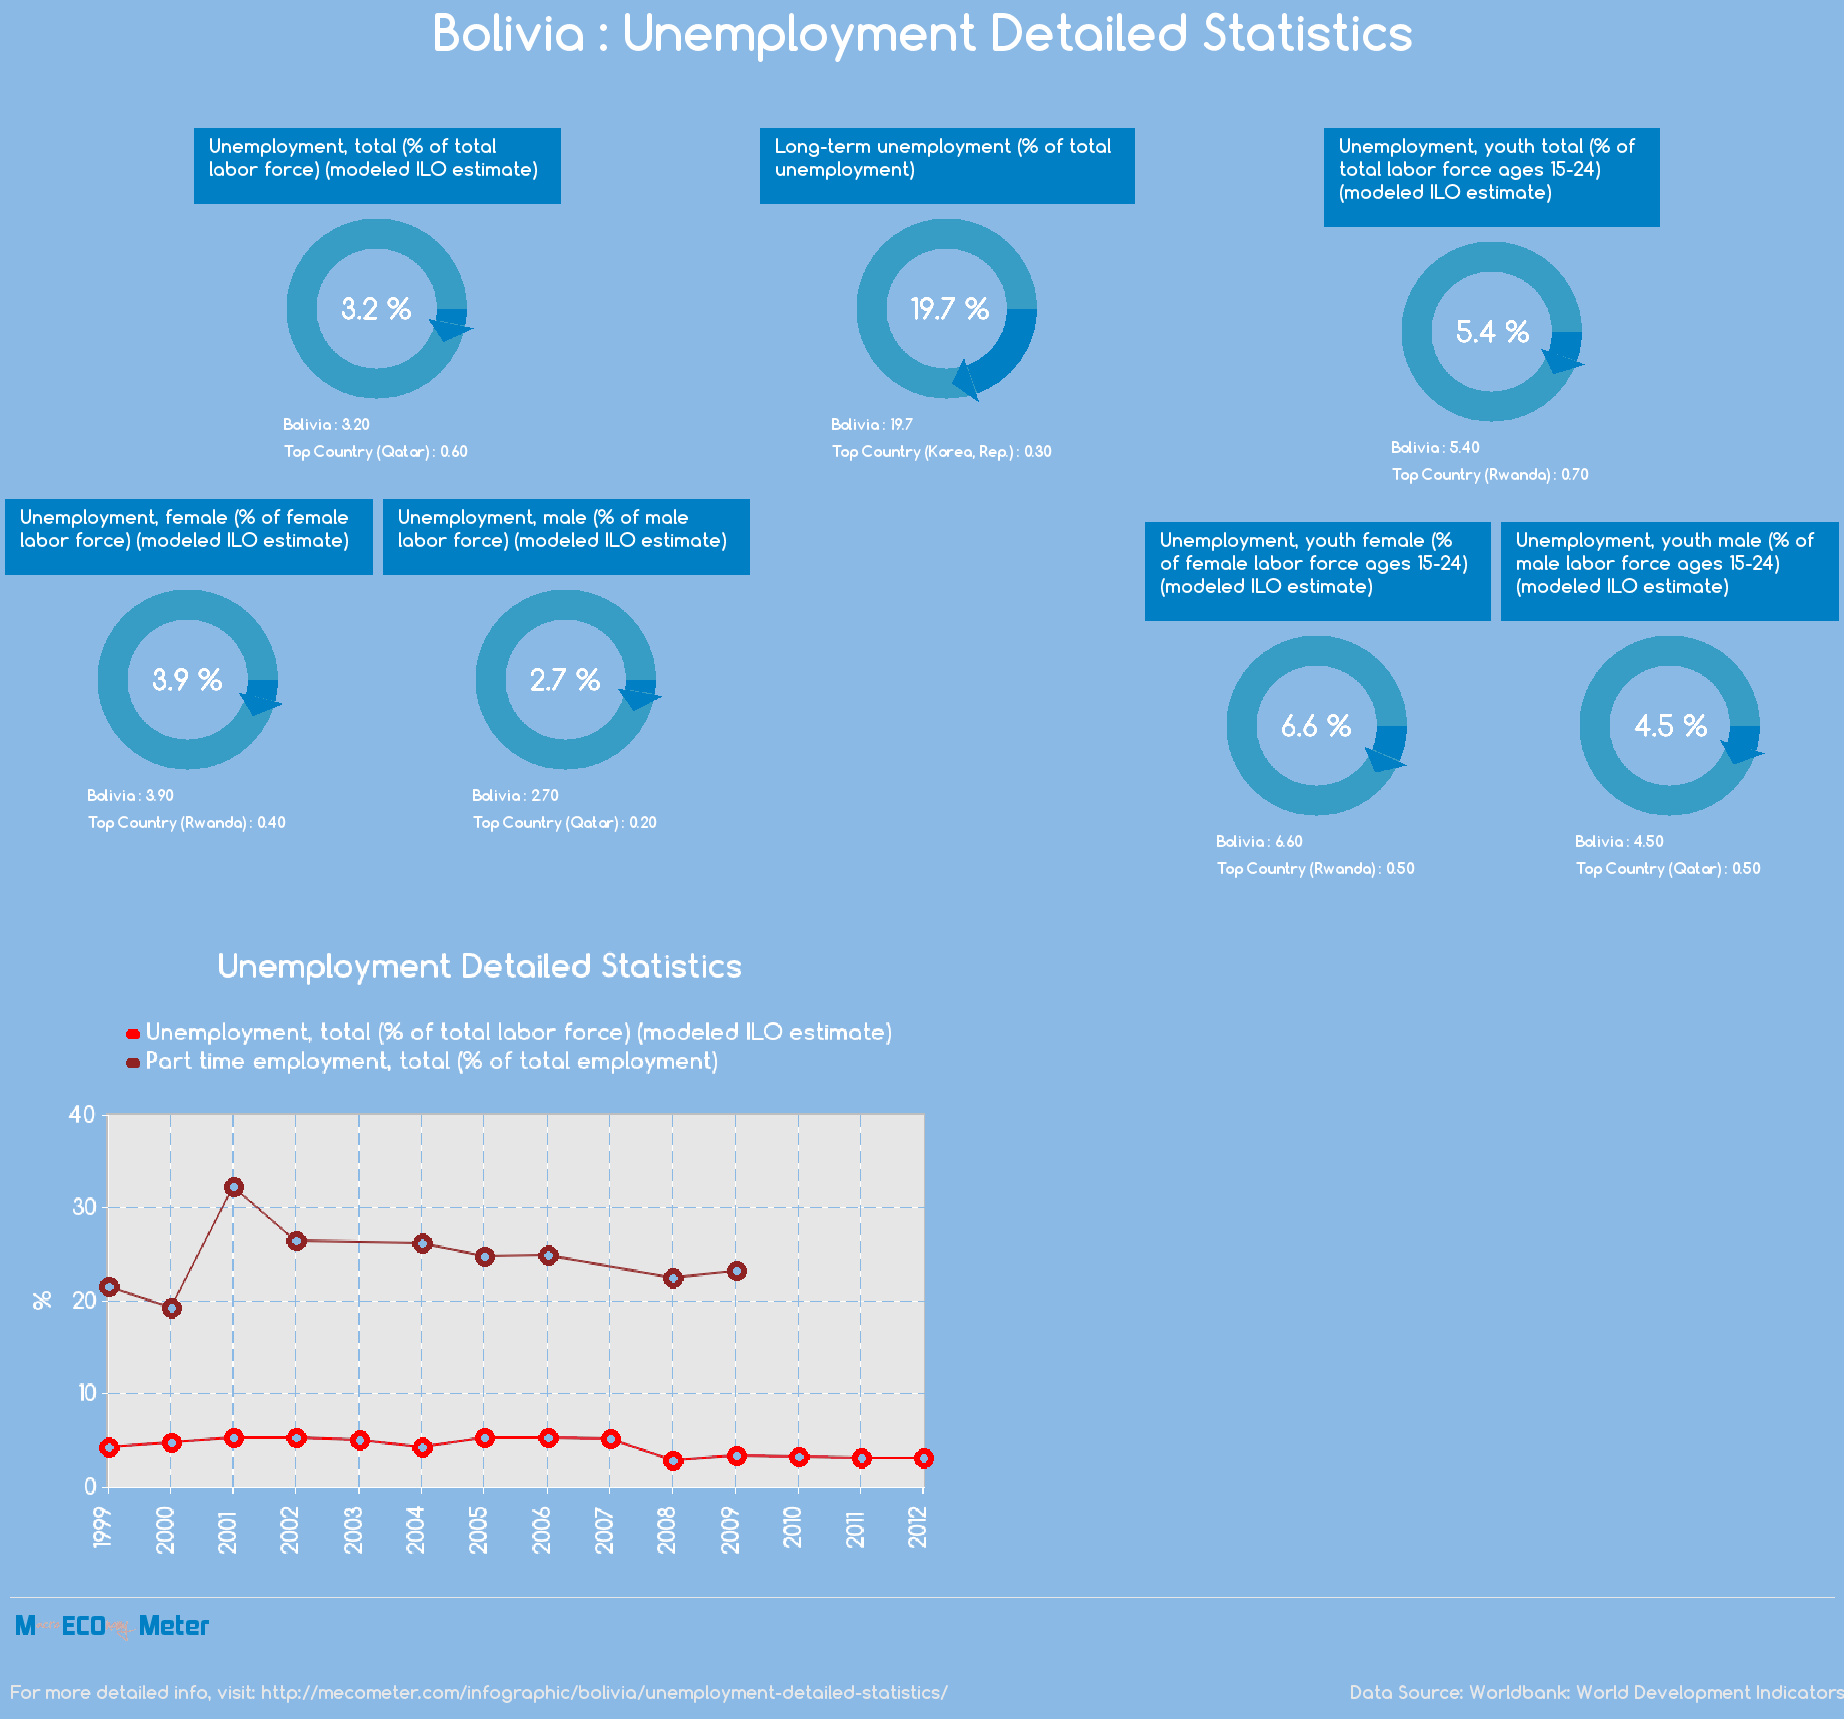 Bolivia : Unemployment Detailed Statistics